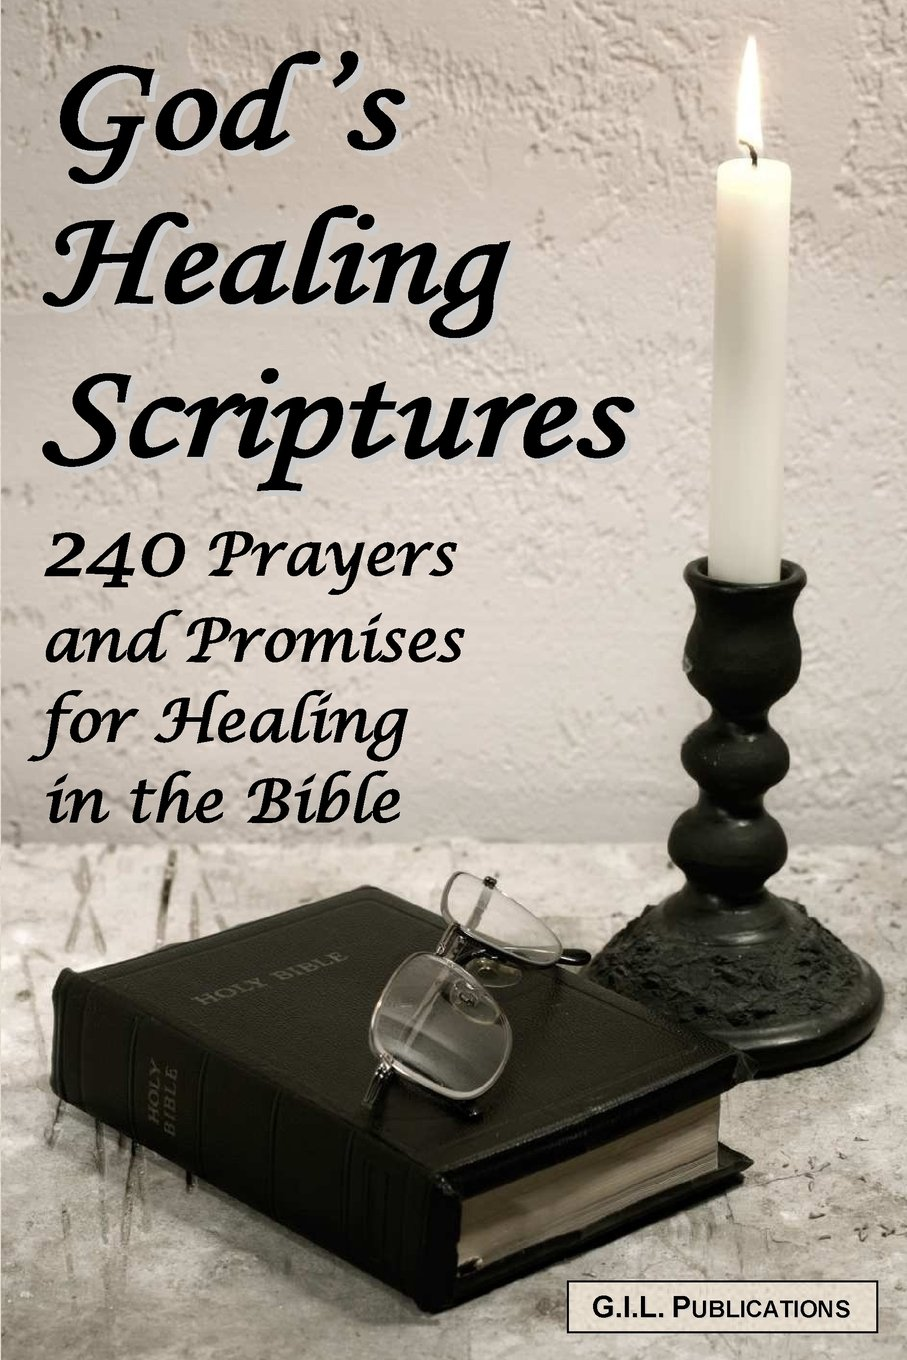 Download God's Healing Scriptures: 240 Prayers and Promises for Healing in the Bible PDF